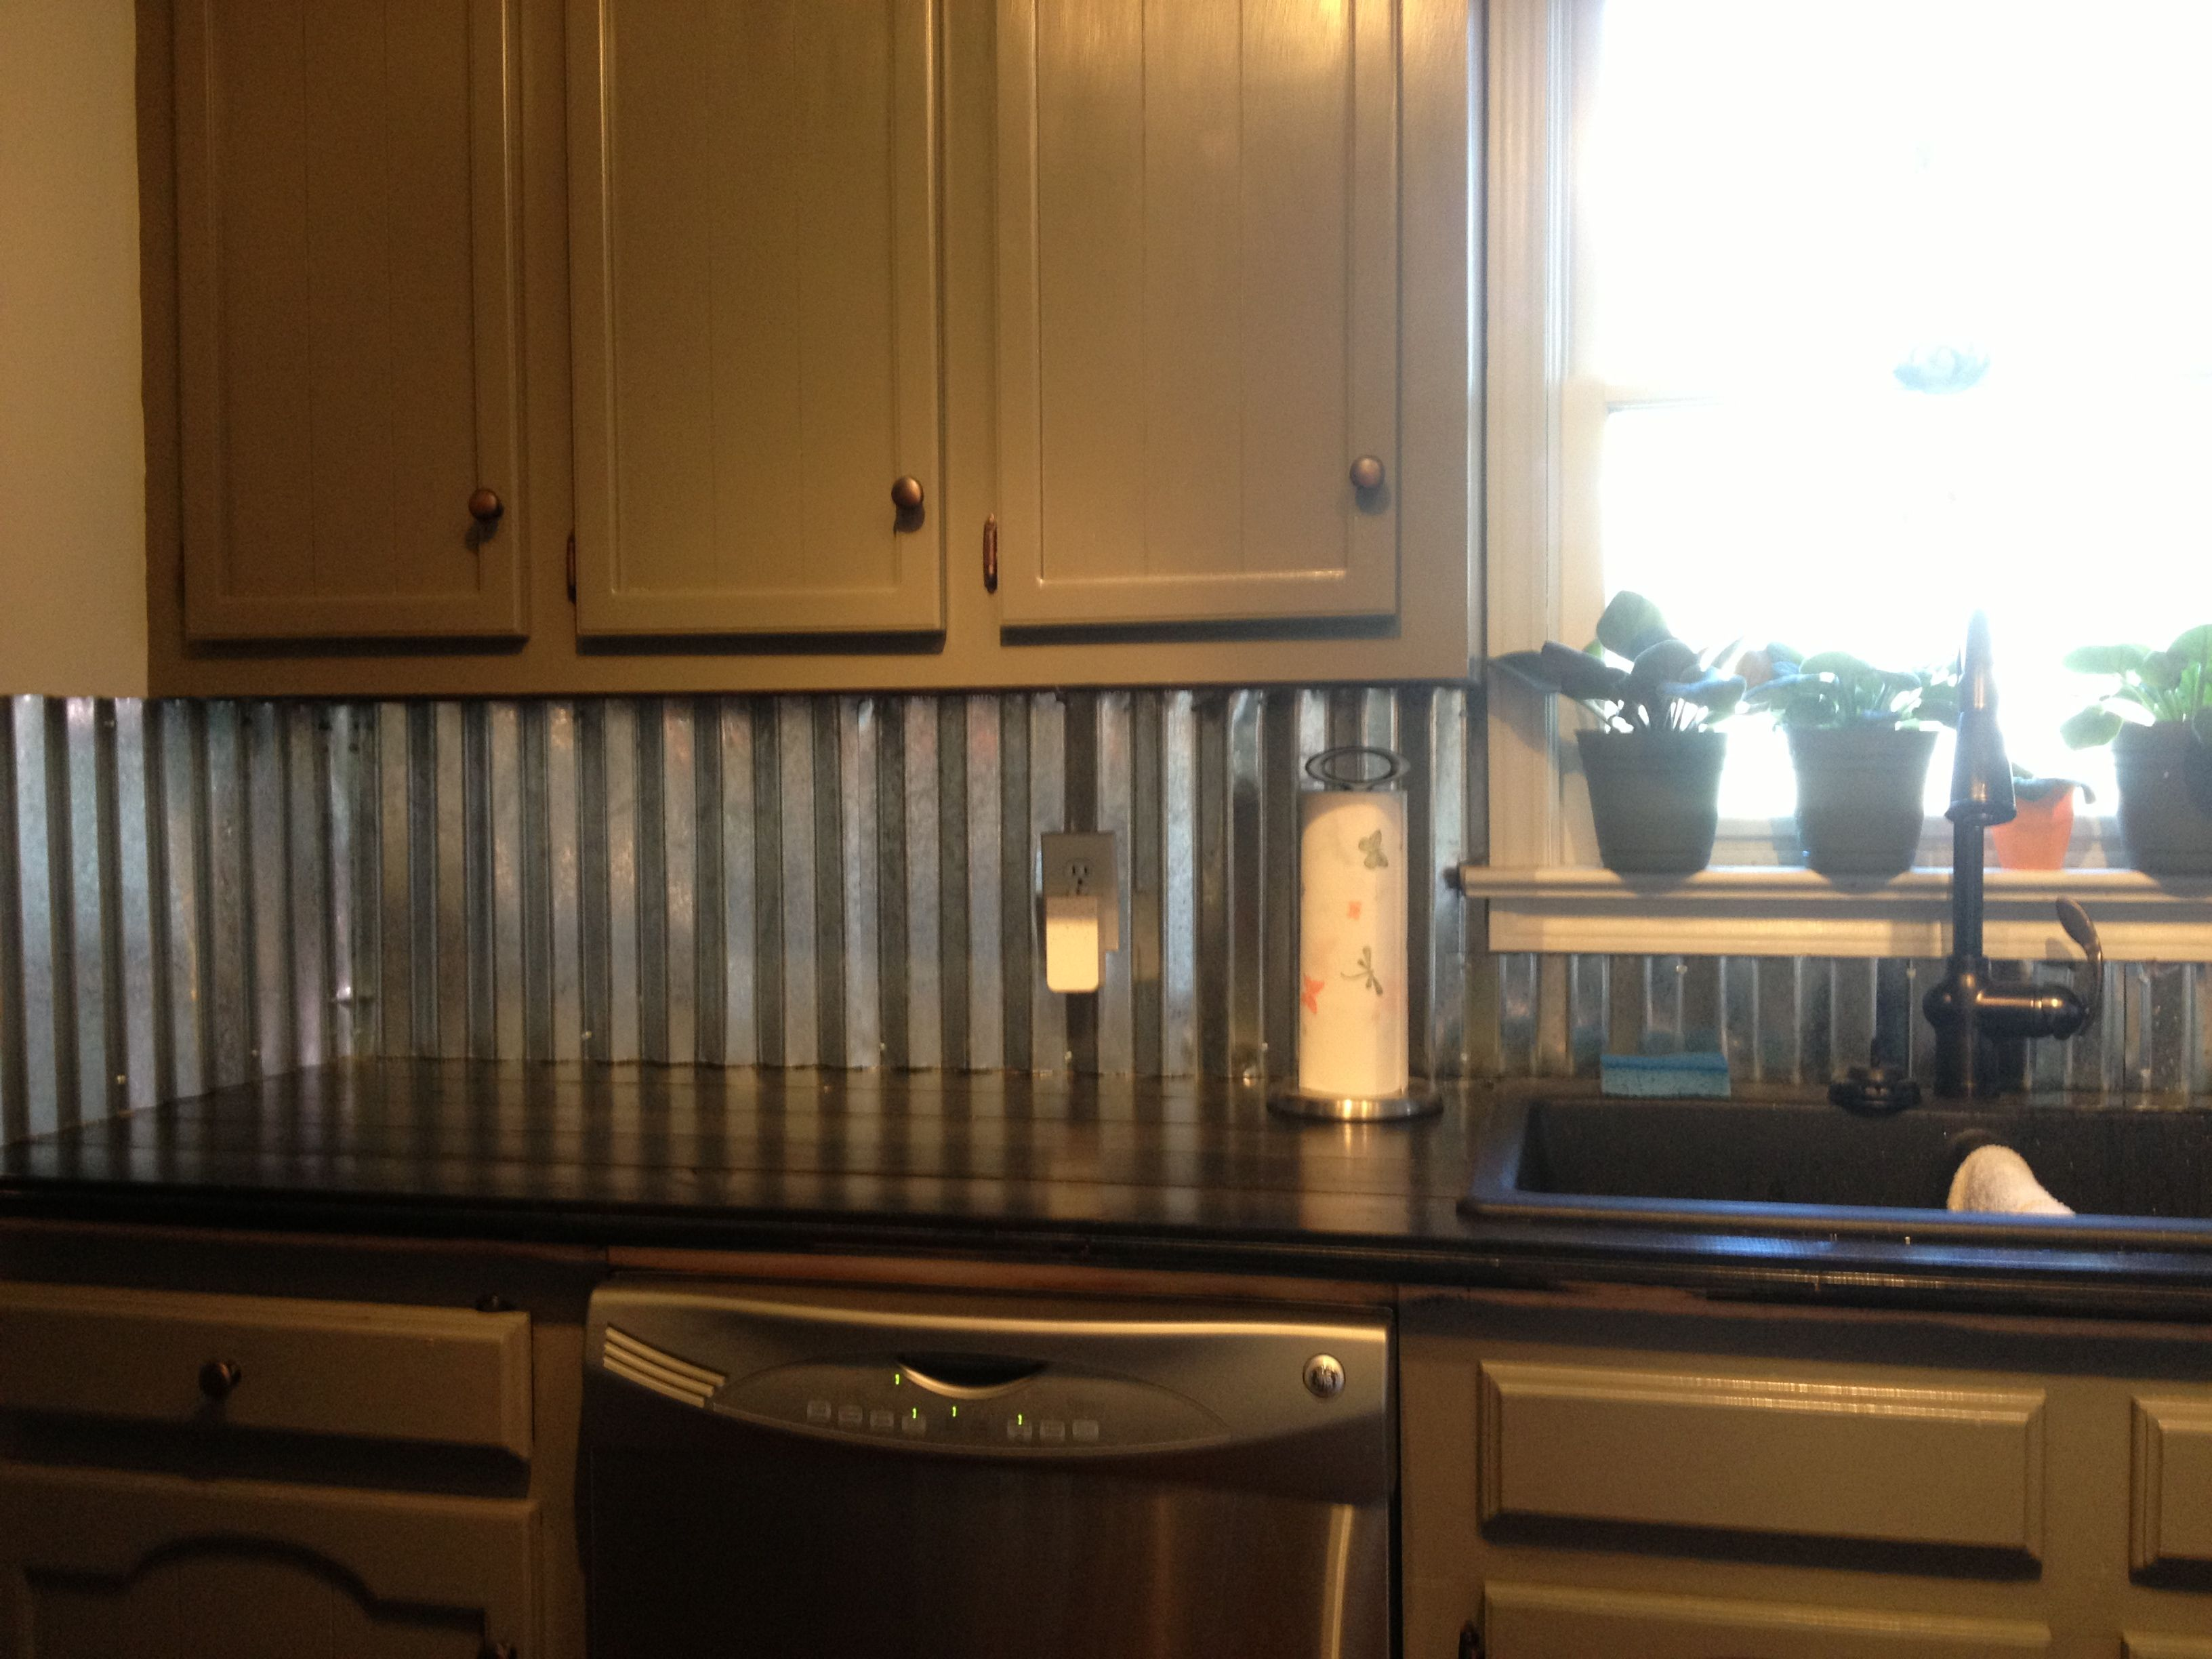 Corrugated metal backsplash Corrugated metal backsplash